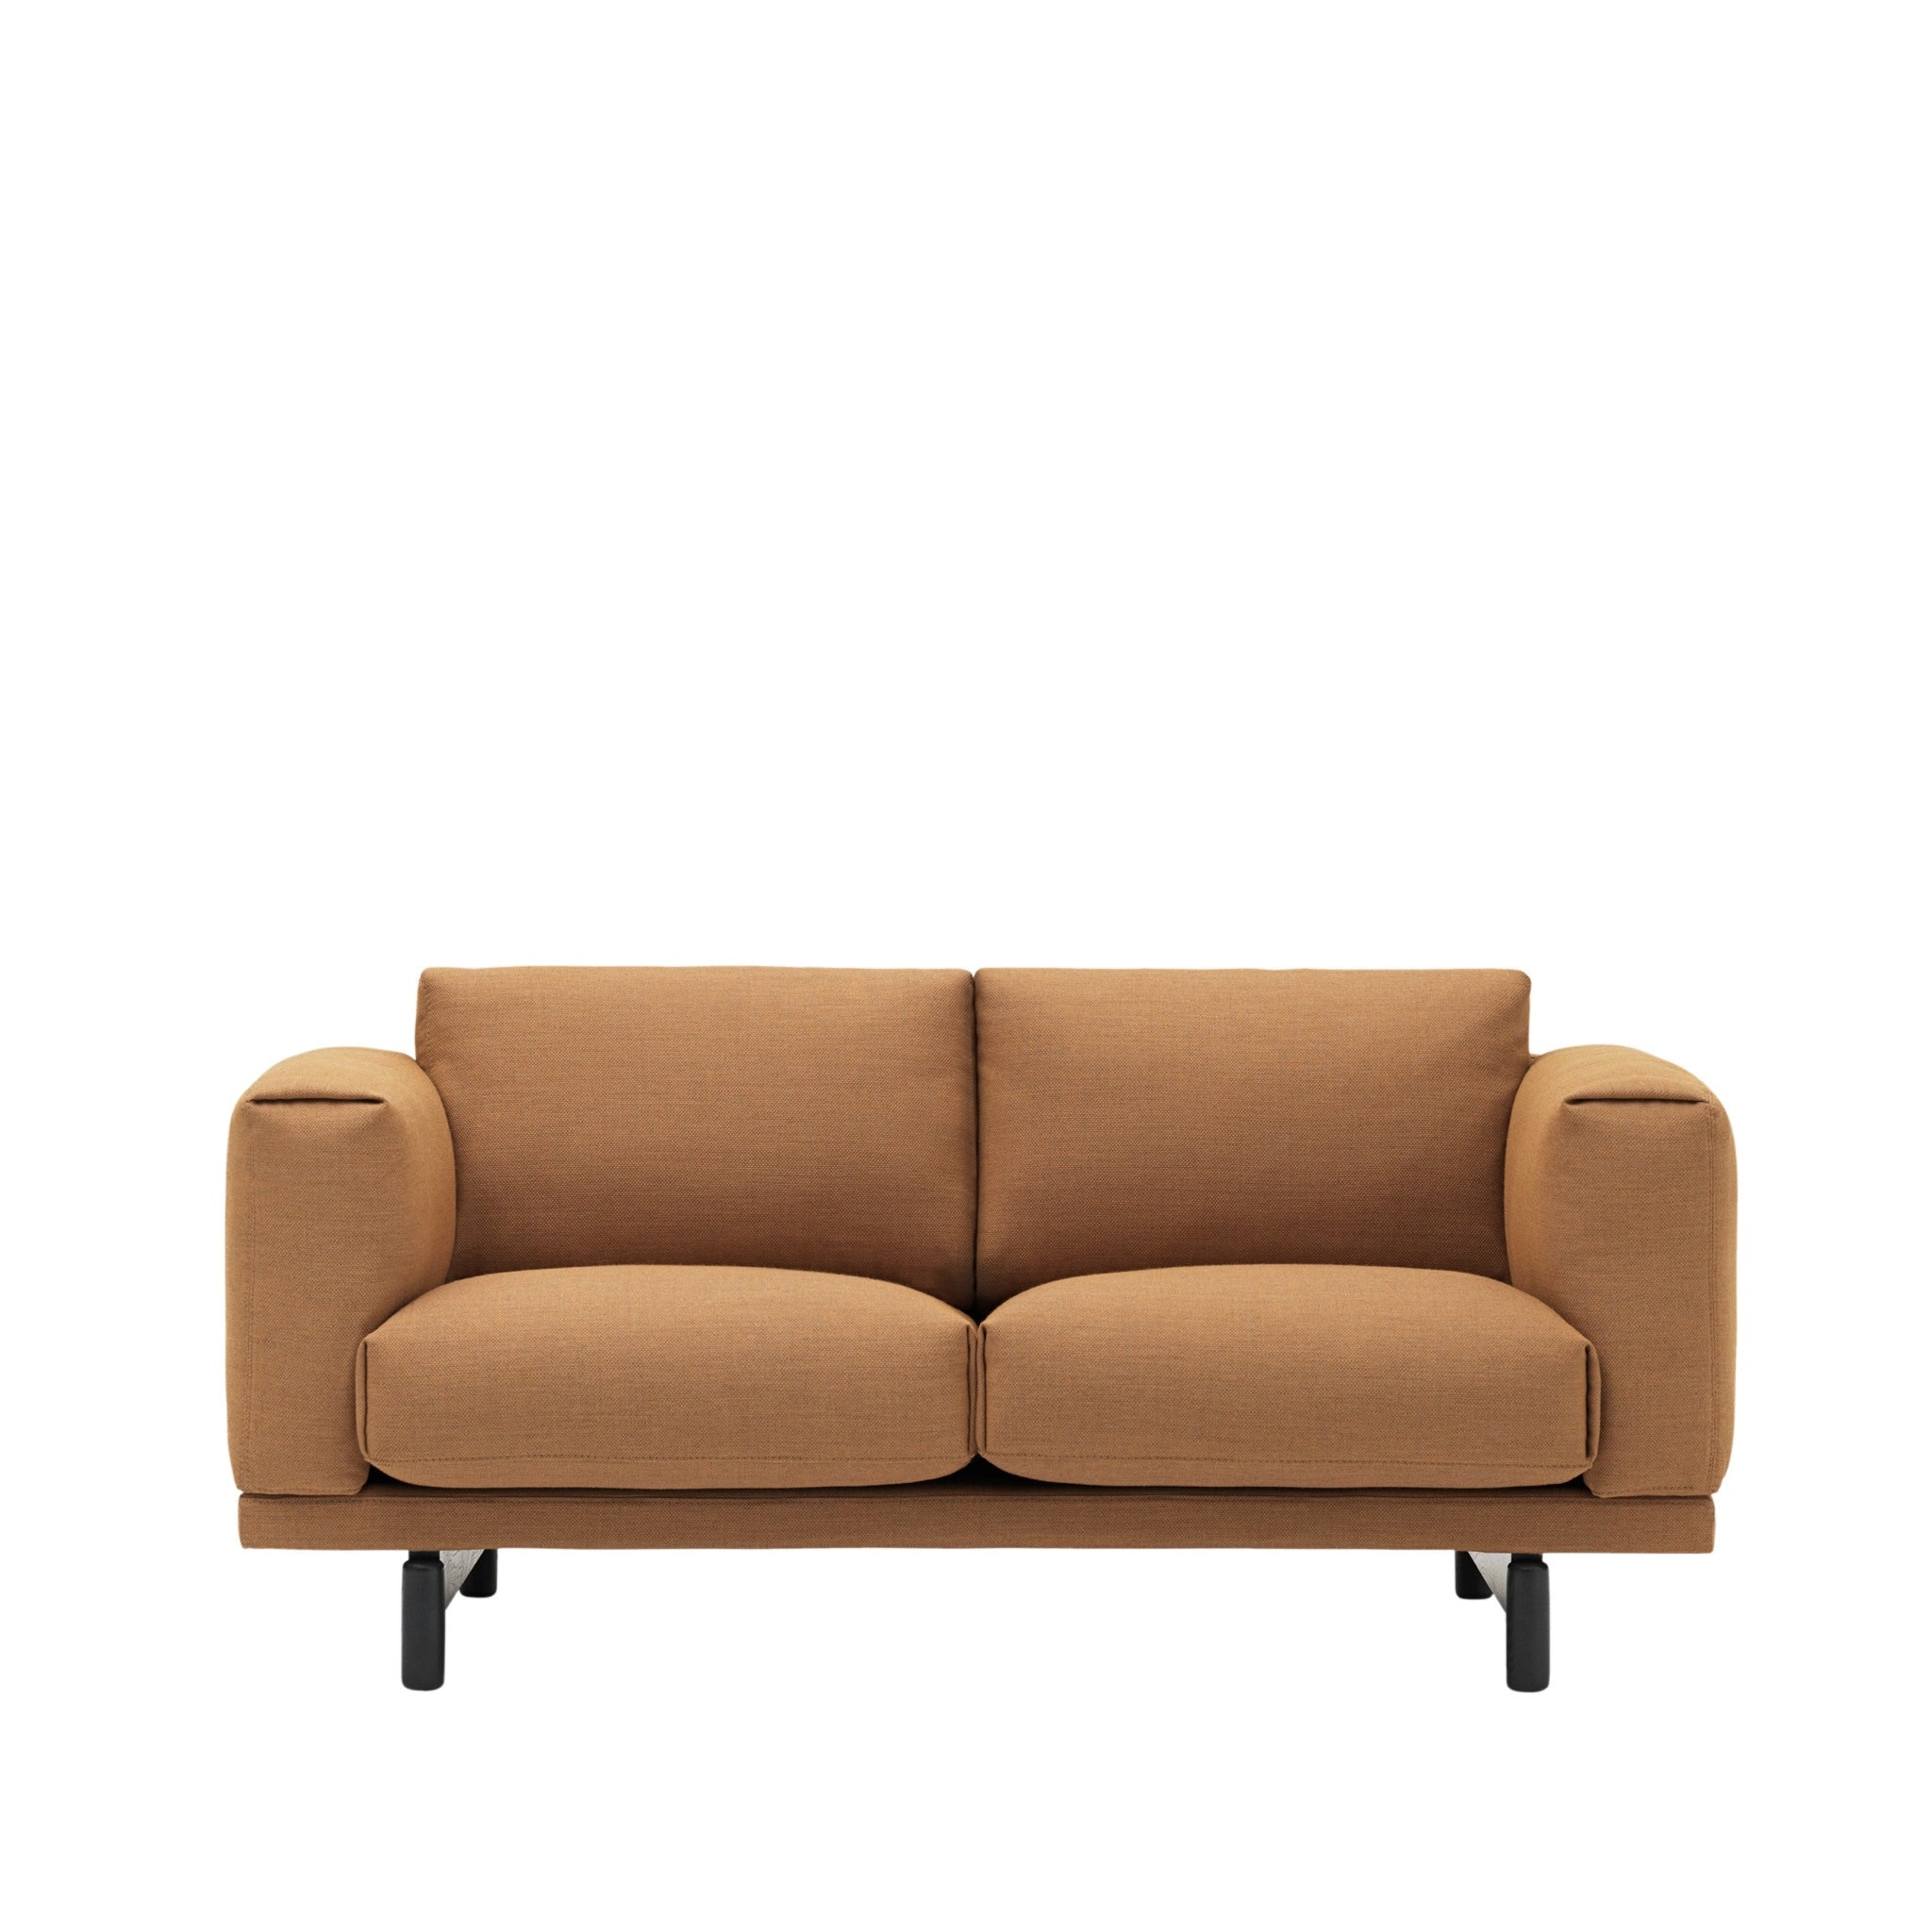 Rest Studio Sofa by Muuto